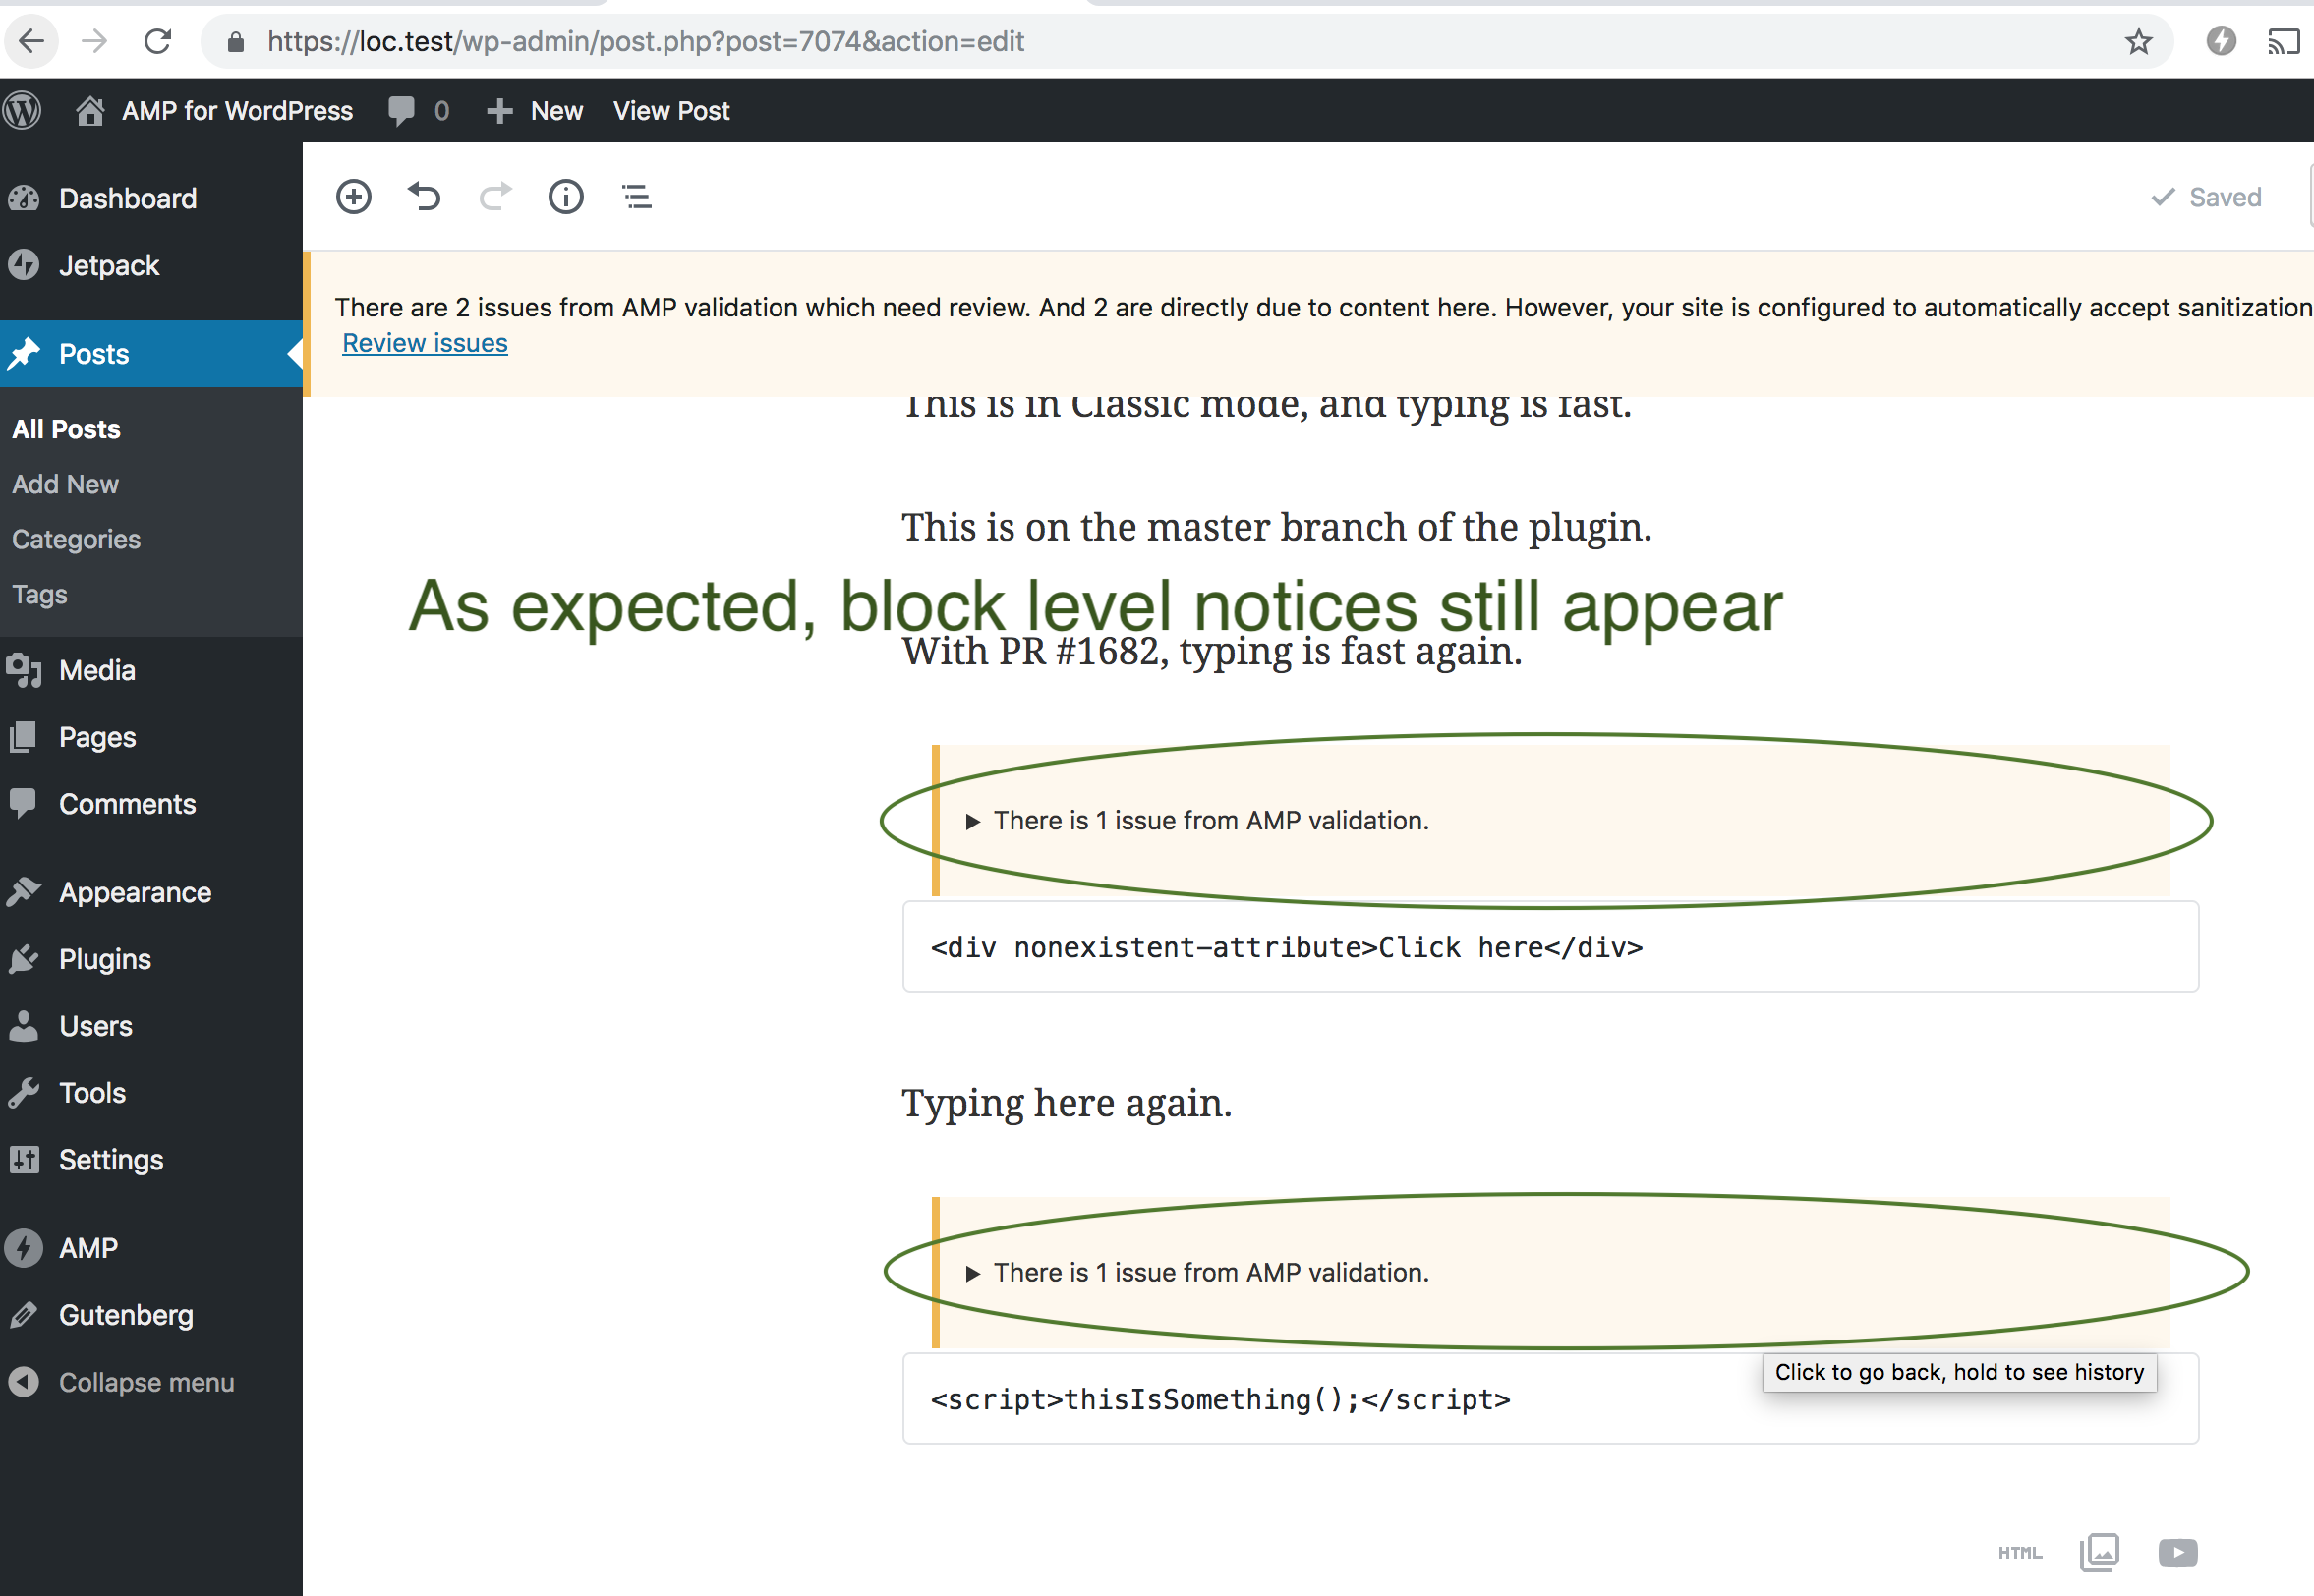 block-level-notices-appear